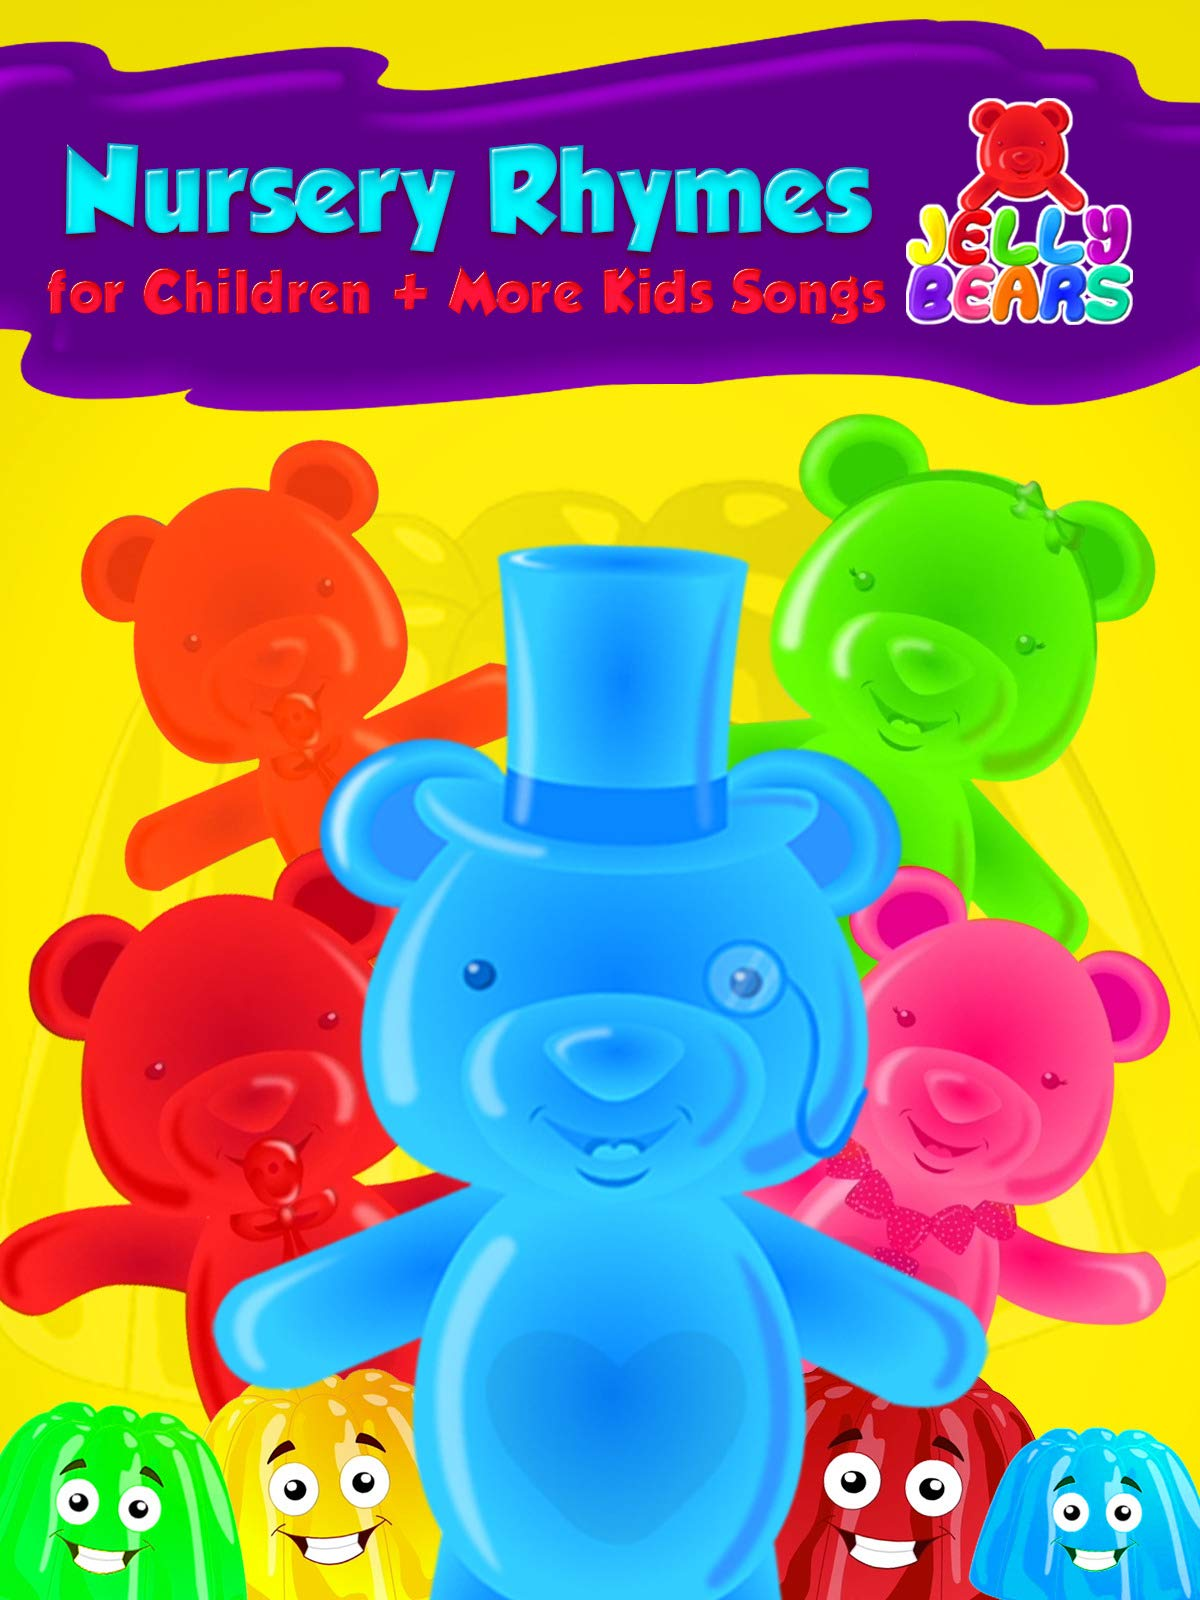 Nursery Rhymes for Children + More Kids Song - Jelly Bears